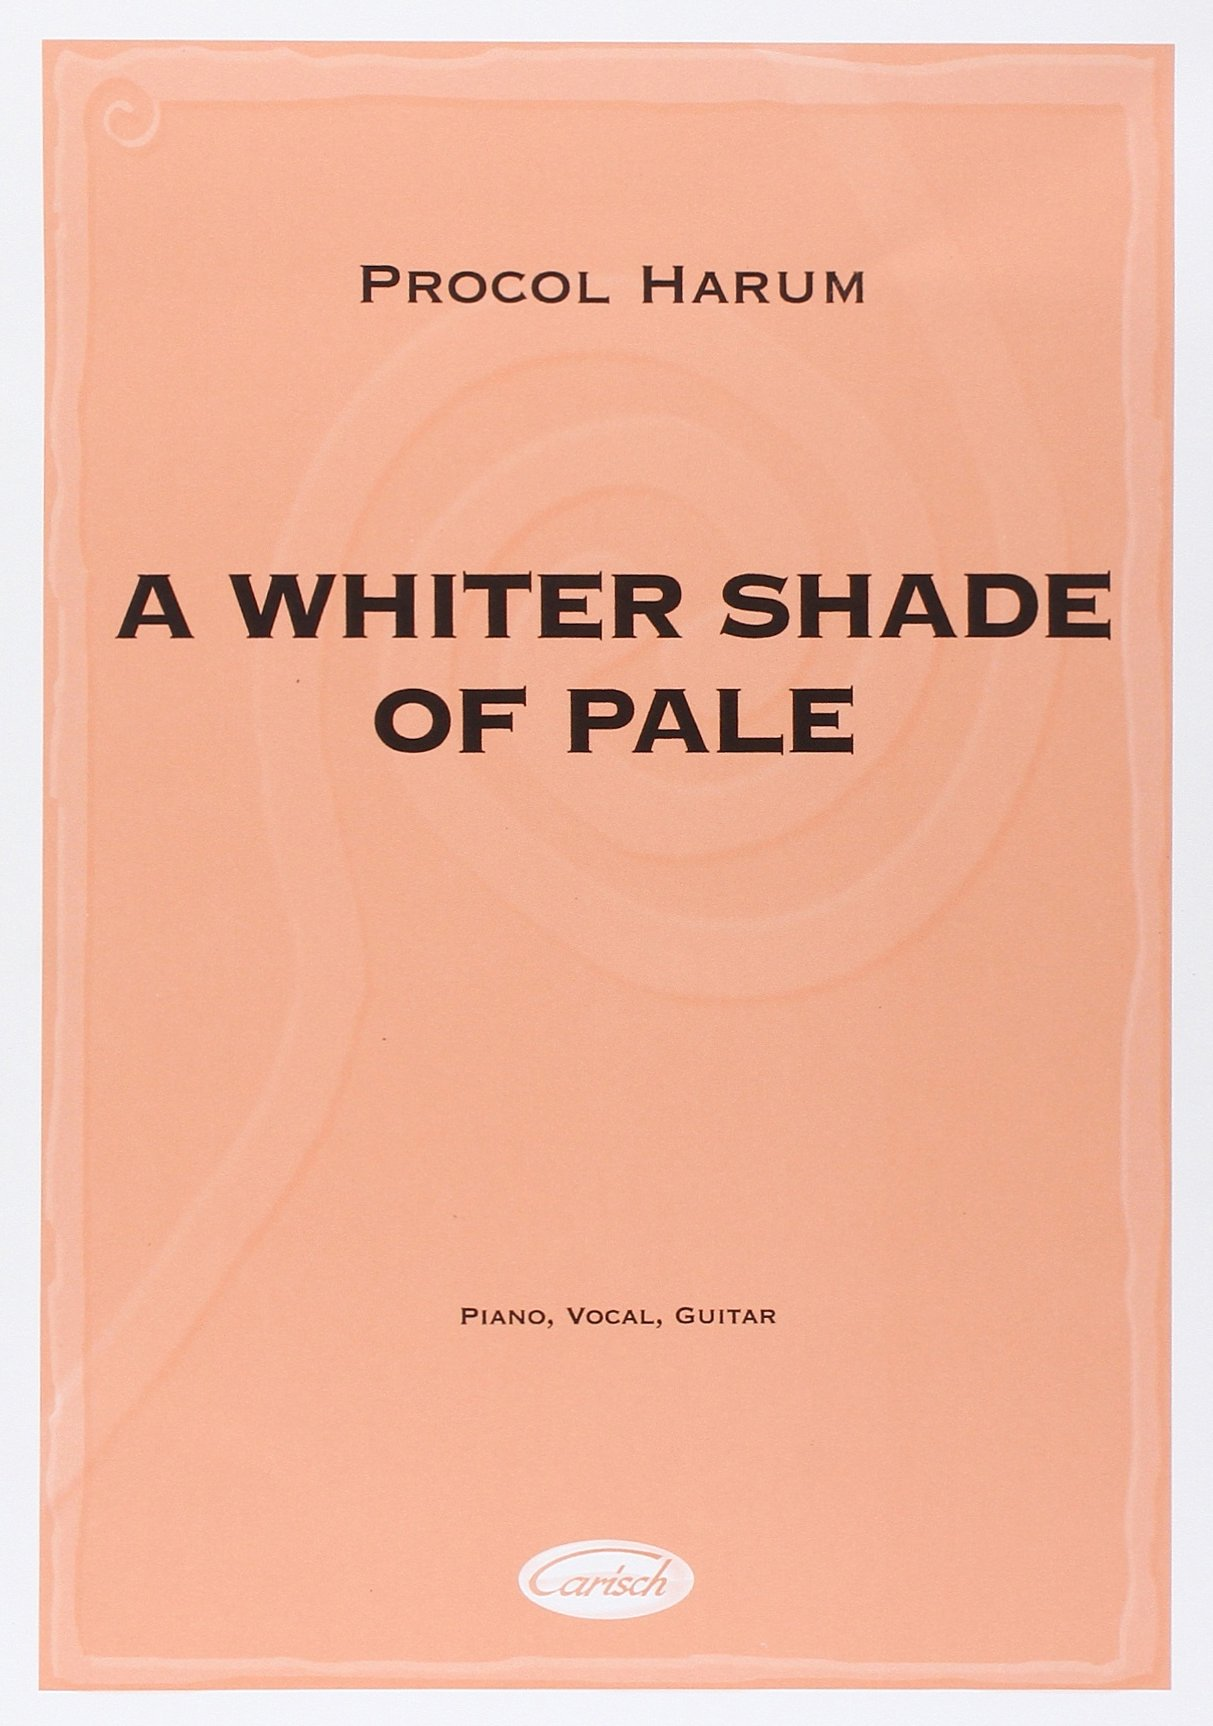 Procul Harum A Whiter Shade of Pale Piano Vocal Guitar Sheet Music PVG